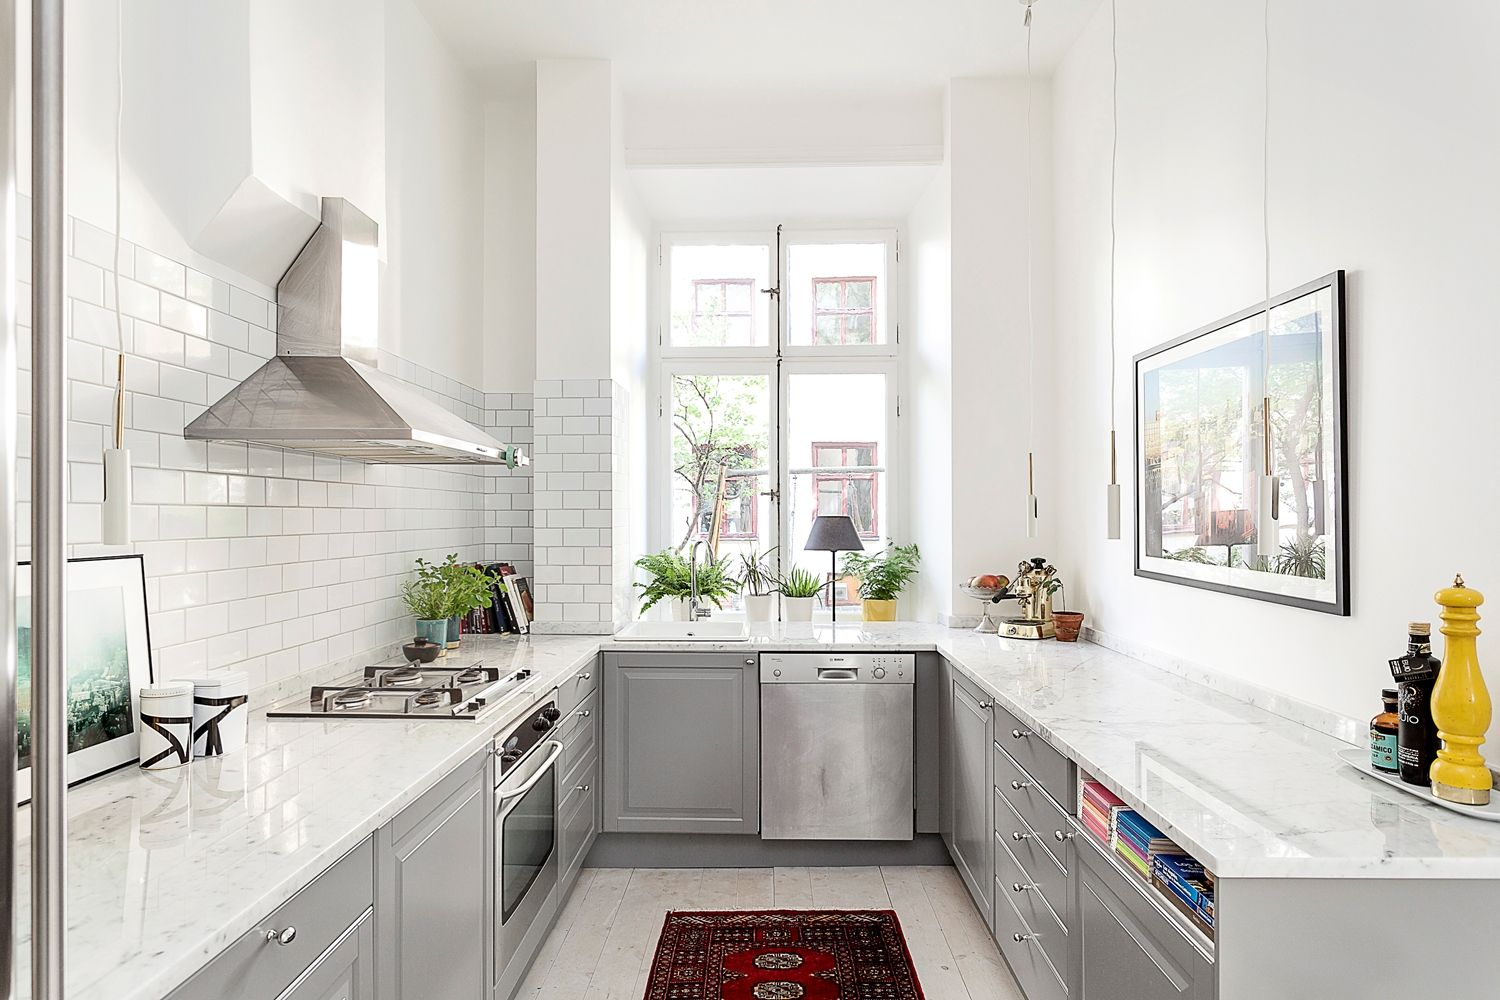 Best Kitchen Gallery: No Overhead Cupboards Looks So Much Nicer Than Conventional of Kitchens With No Overhead Cabinets on rachelxblog.com